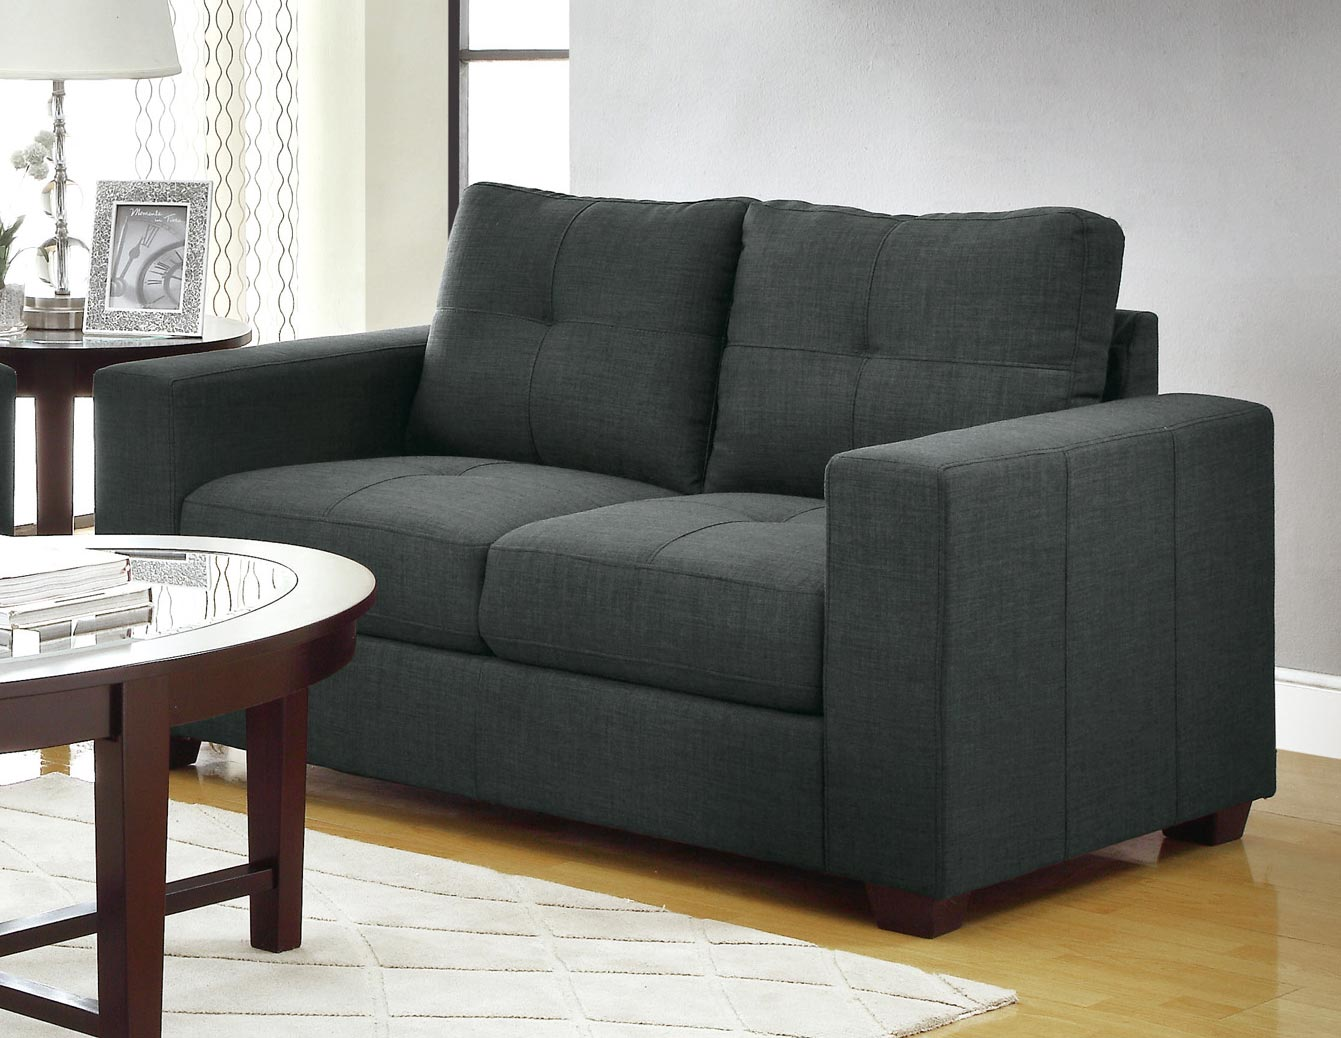 Homelegance Ashmont Love Seat - Polyester - Dark Grey